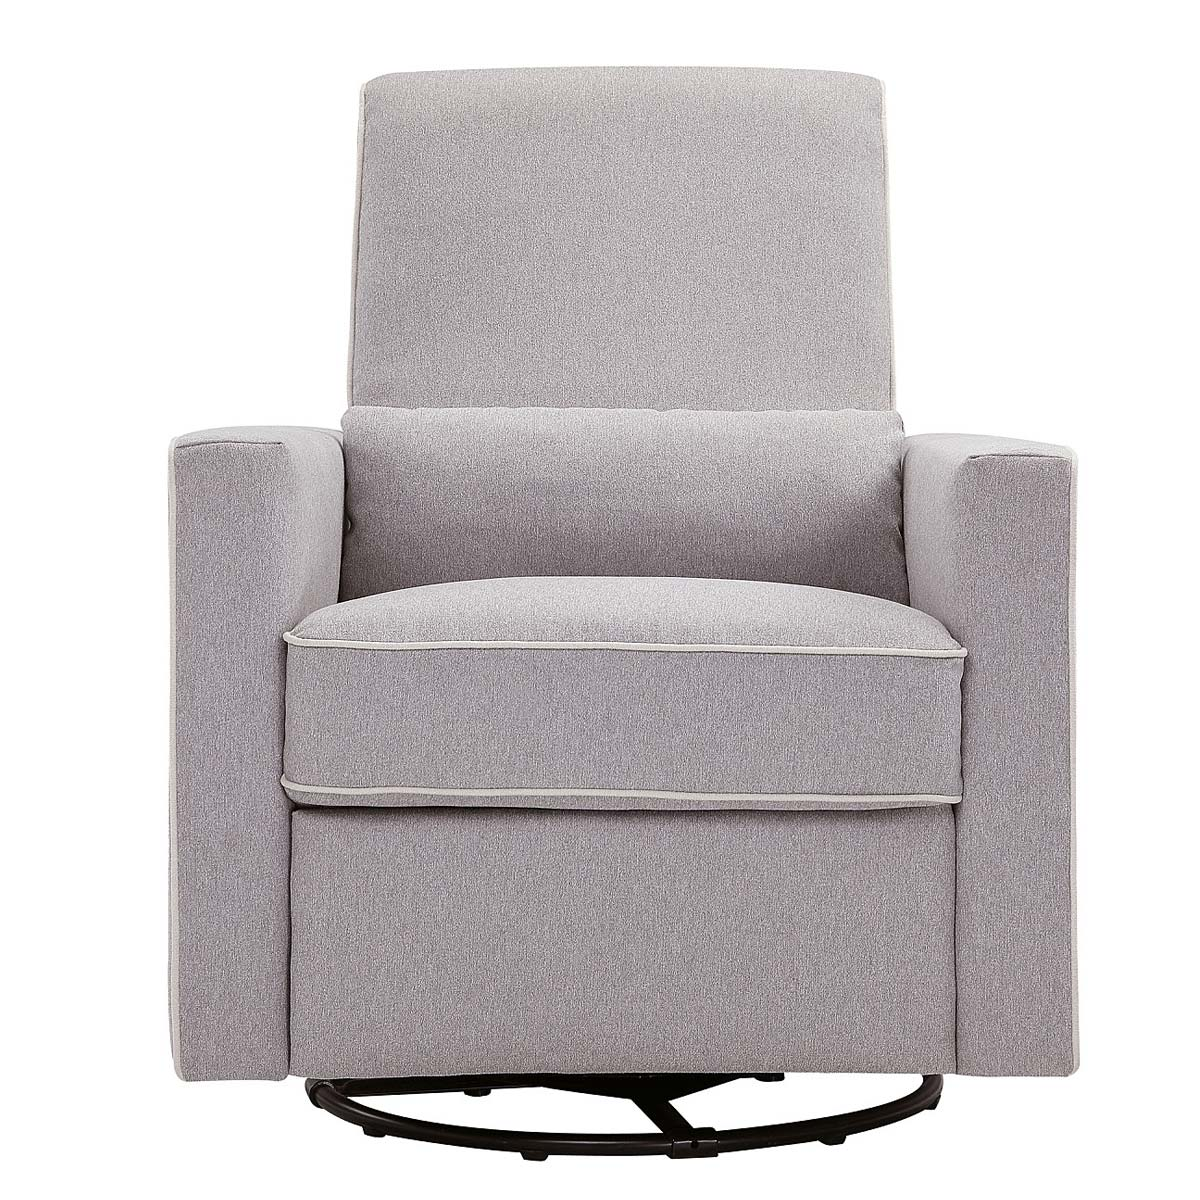 DaVinci Piper All Purpose Upholstered Recliner In Grey Finish With Cream  FREE SHIPPING